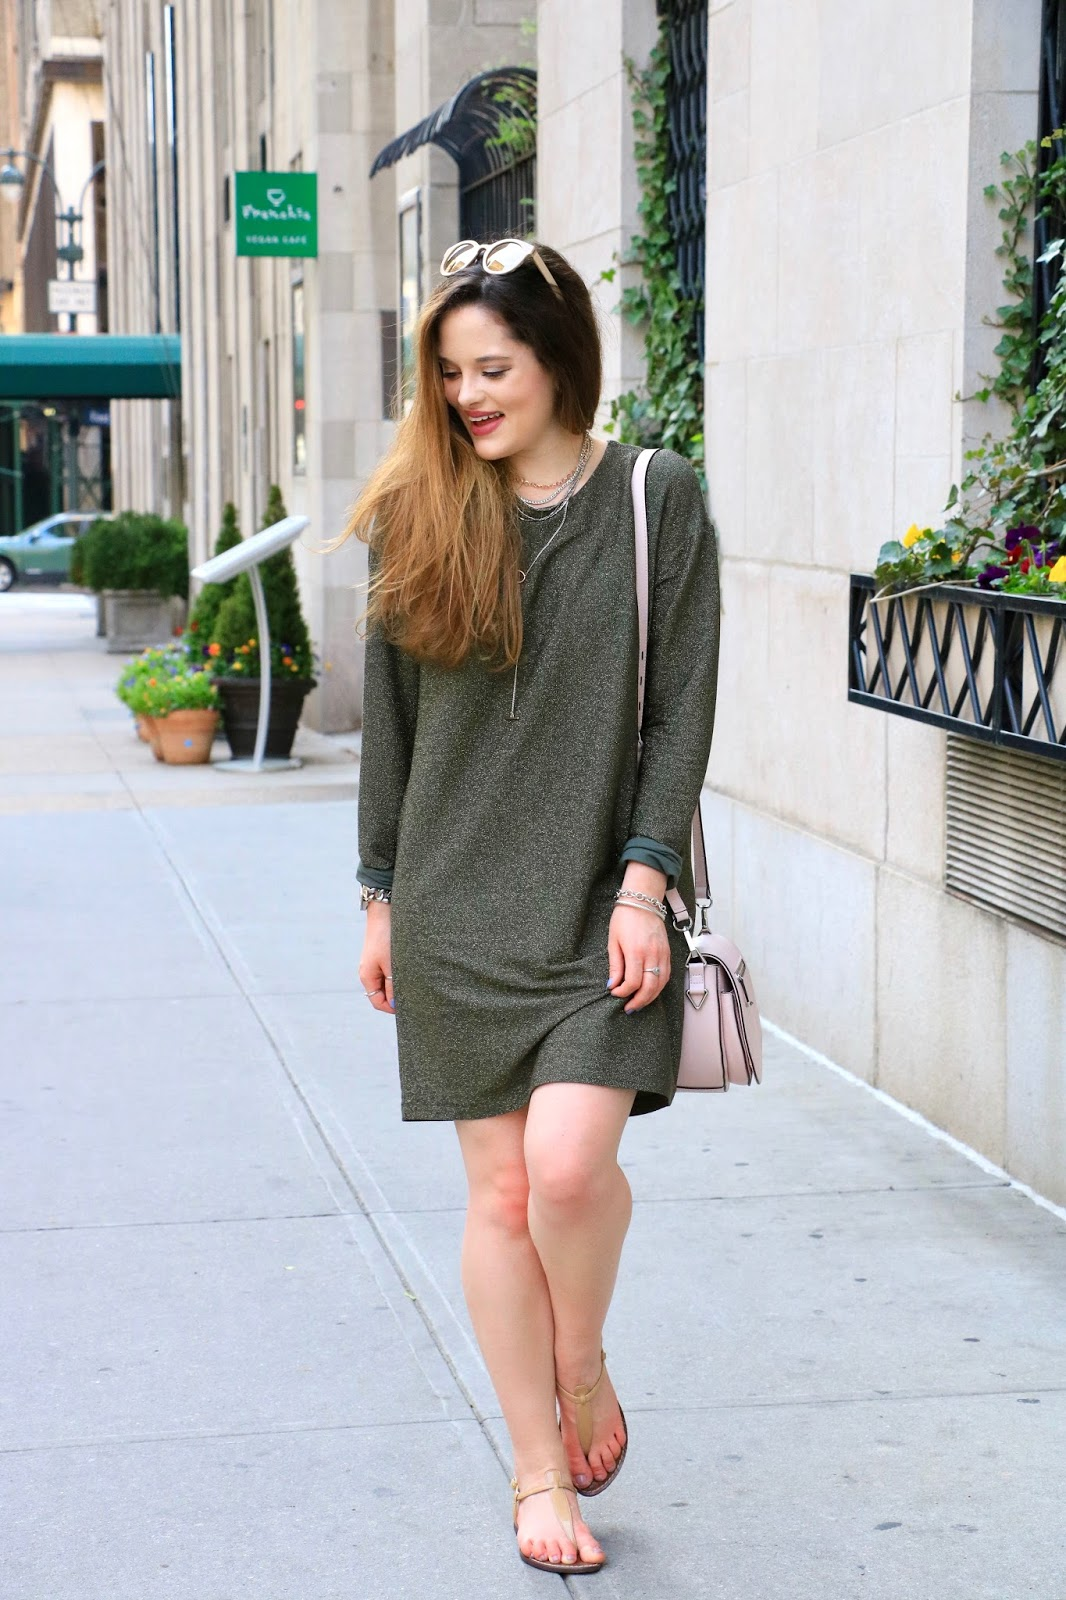 Fashion blogger Kathleen Harper wearing a green cutout dress